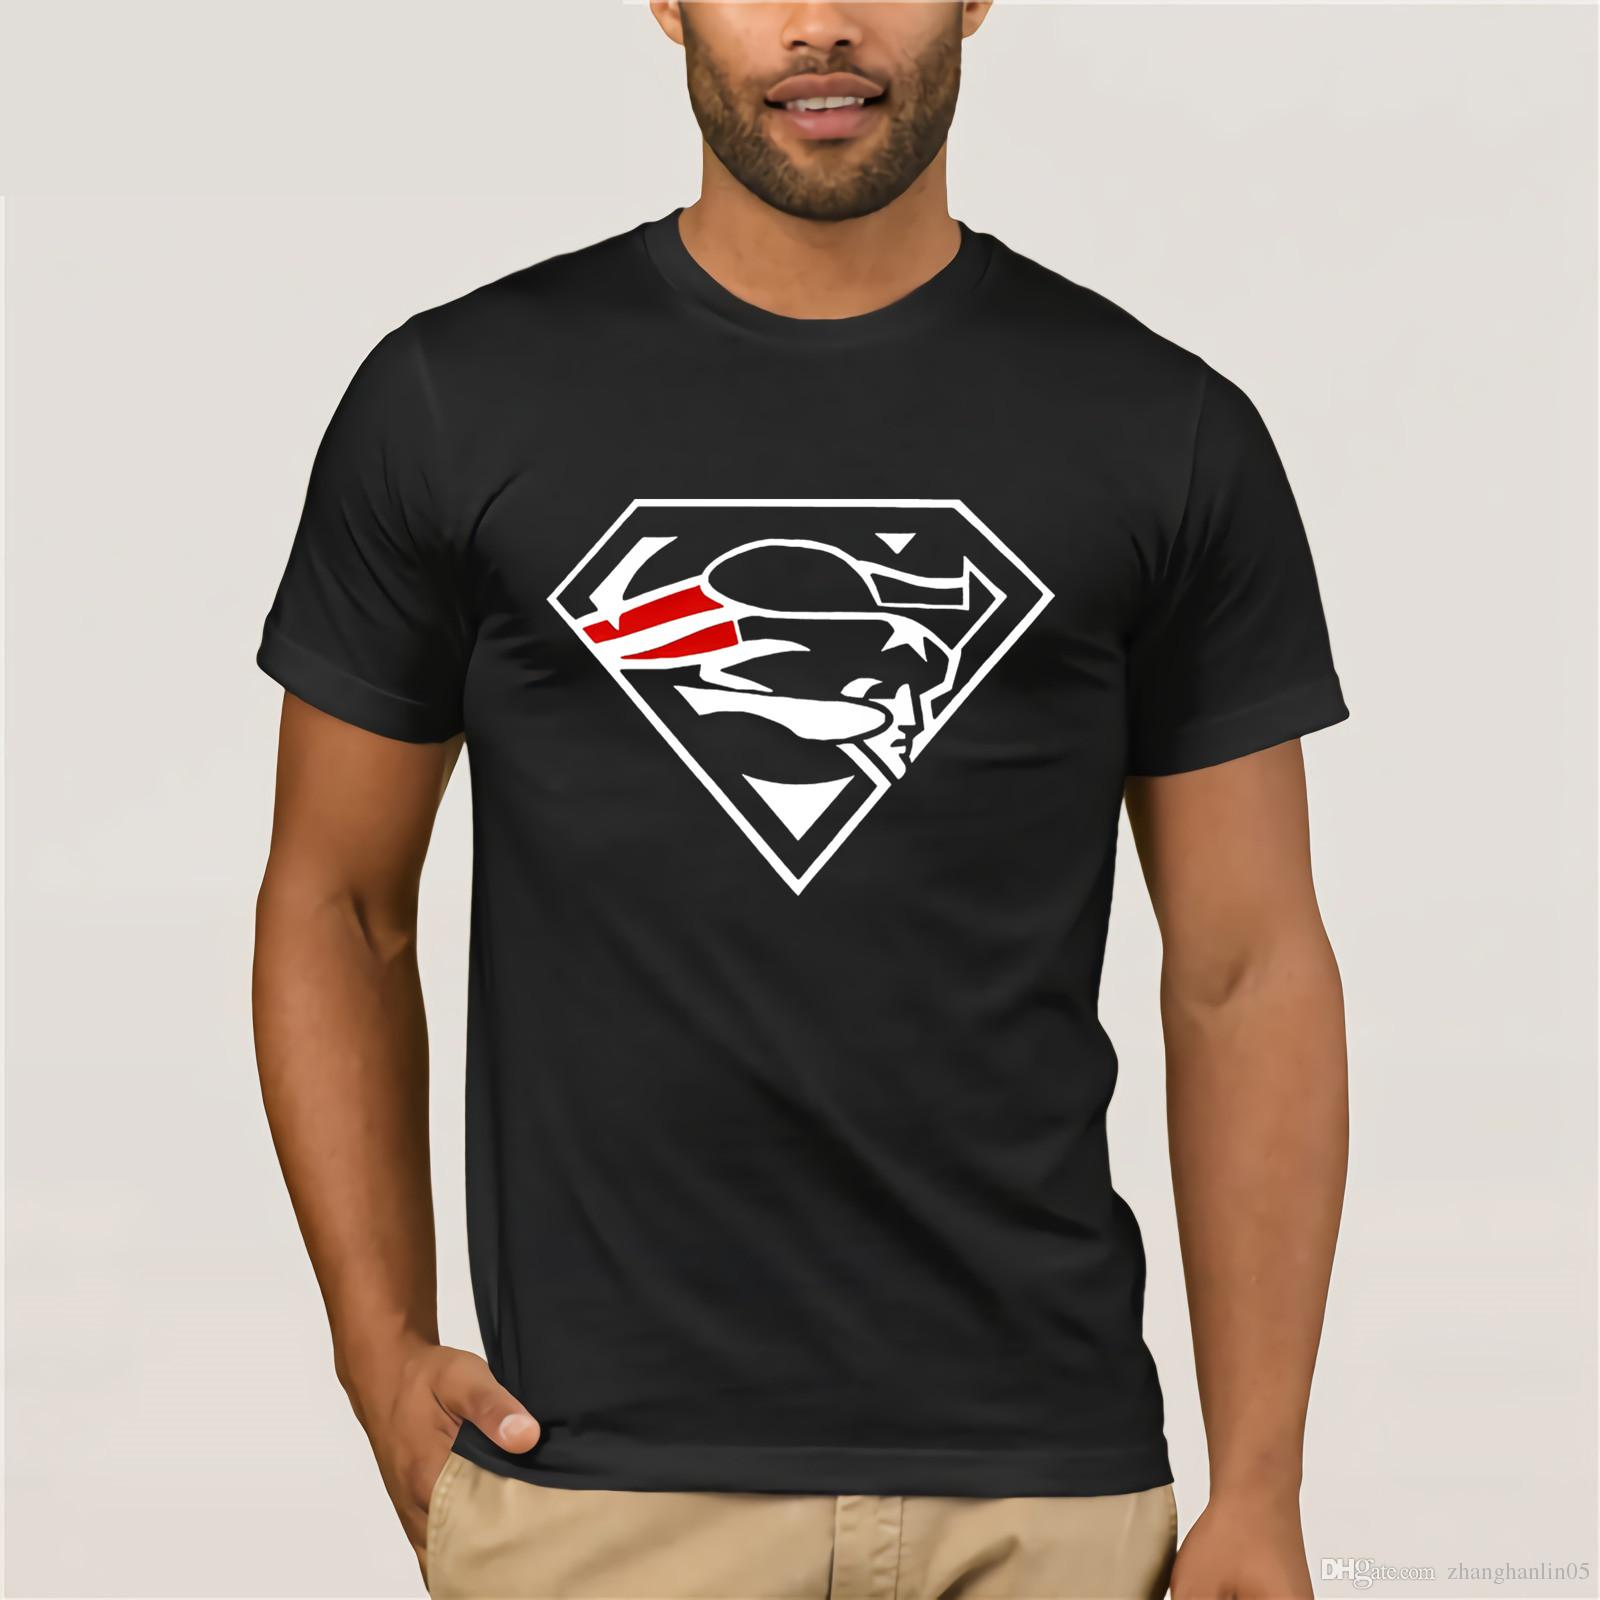 Super Patriots Fan Blue T Shirt Superman New England Pats Fans All Sizes S  3XL Top Quality Cotton Casual Men T Shirts Men Free Crazy Tshirts Buy  Tshirt From ... 390bfe6dd